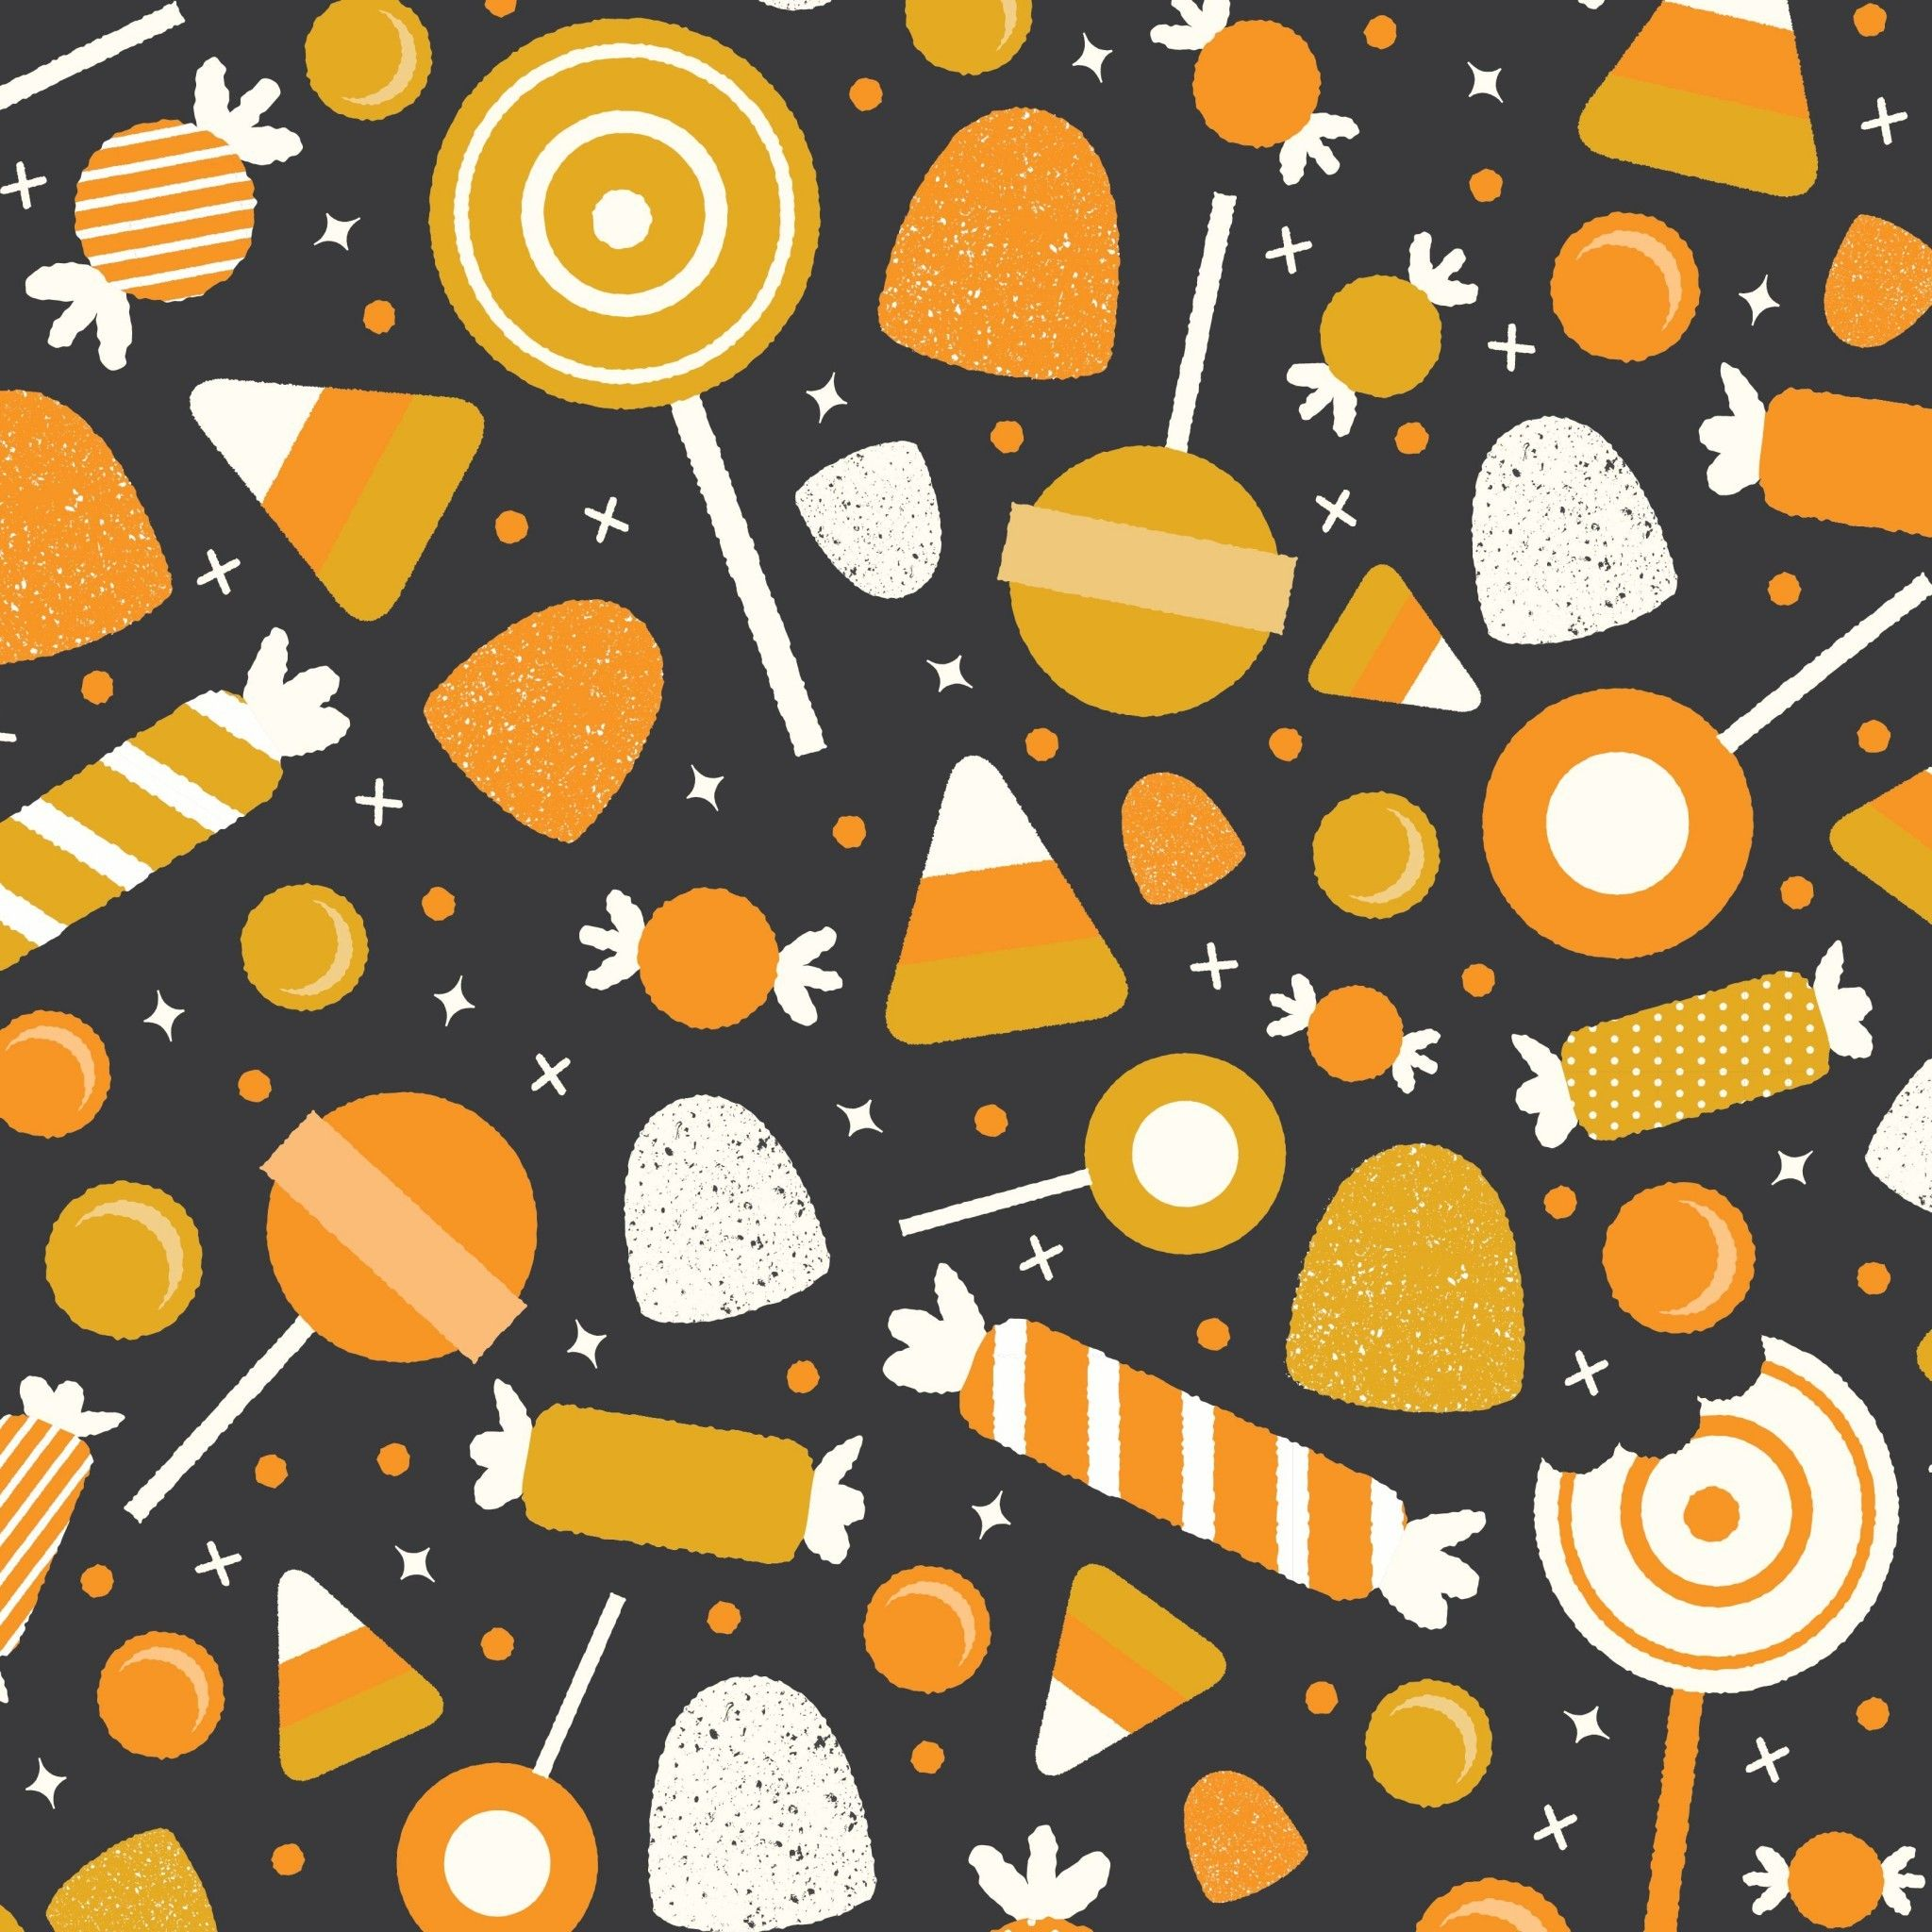 2048x2048 Halloween Candy Tap Image For More Fun Pattern Wallpapers For Iphone Ipad Android Halloween Patterns Halloween Candy Halloween Wallpaper